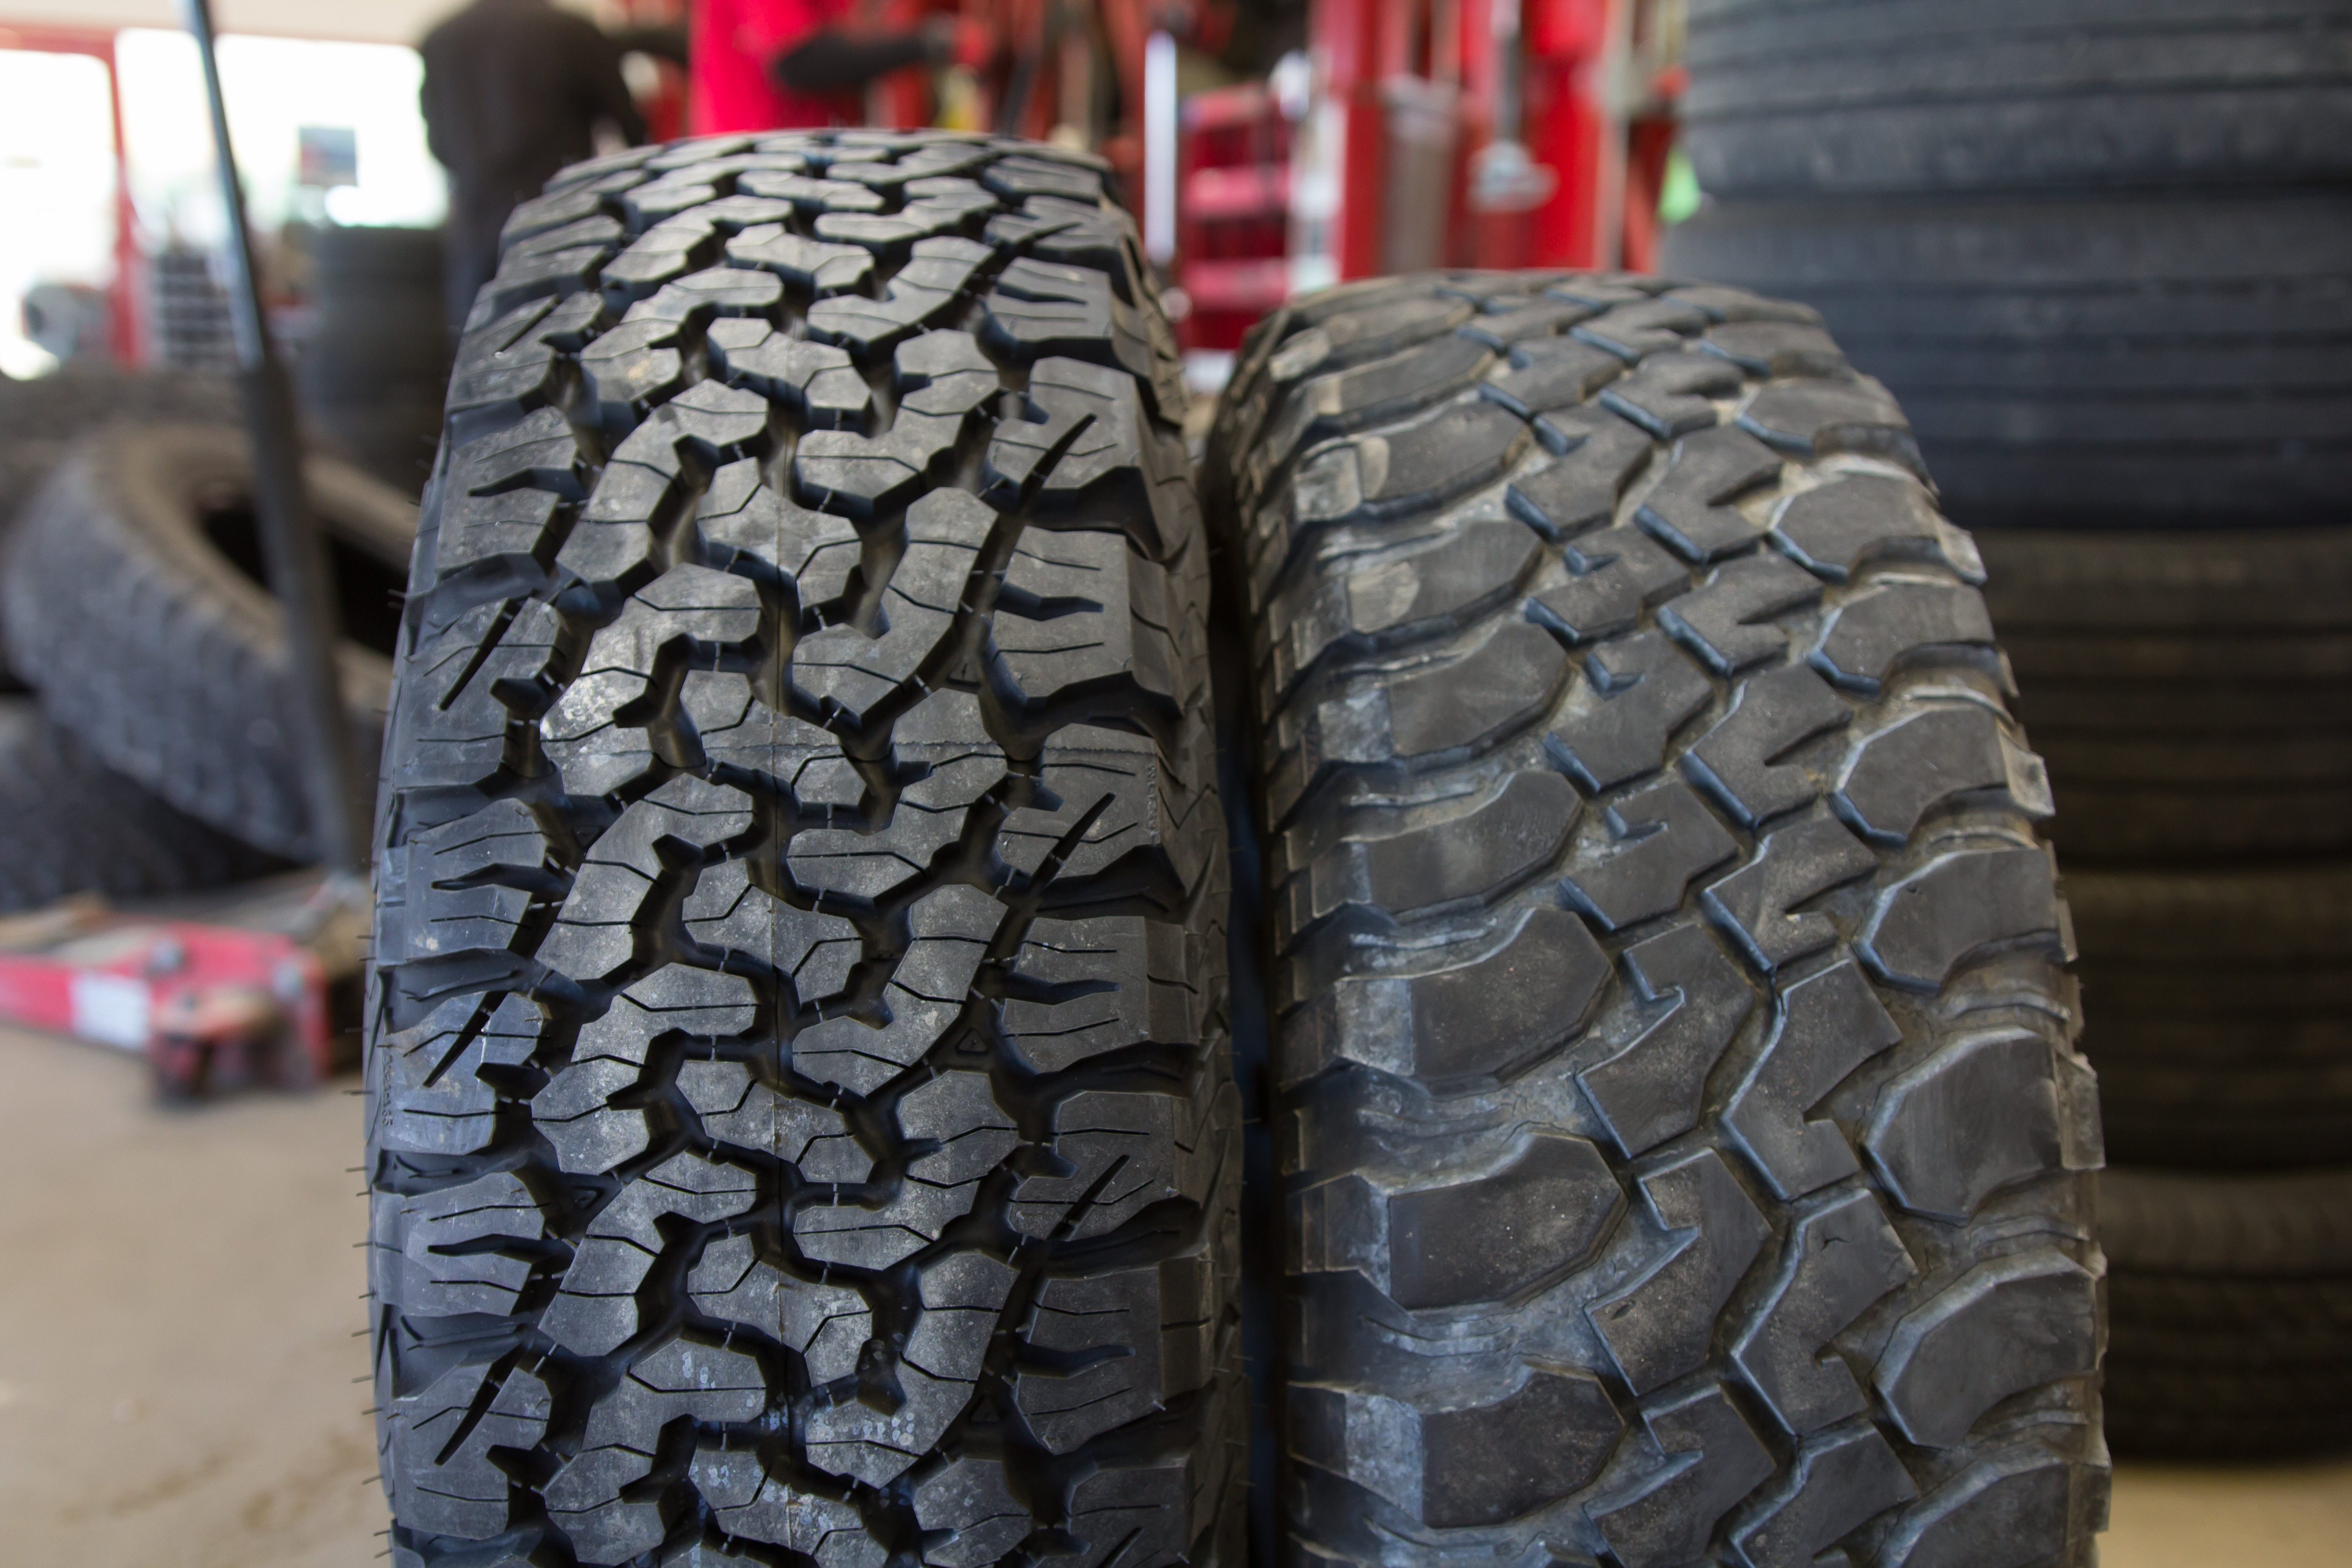 Tire Selection Bfg Ko2 All Terrain Jpfreek Adventure